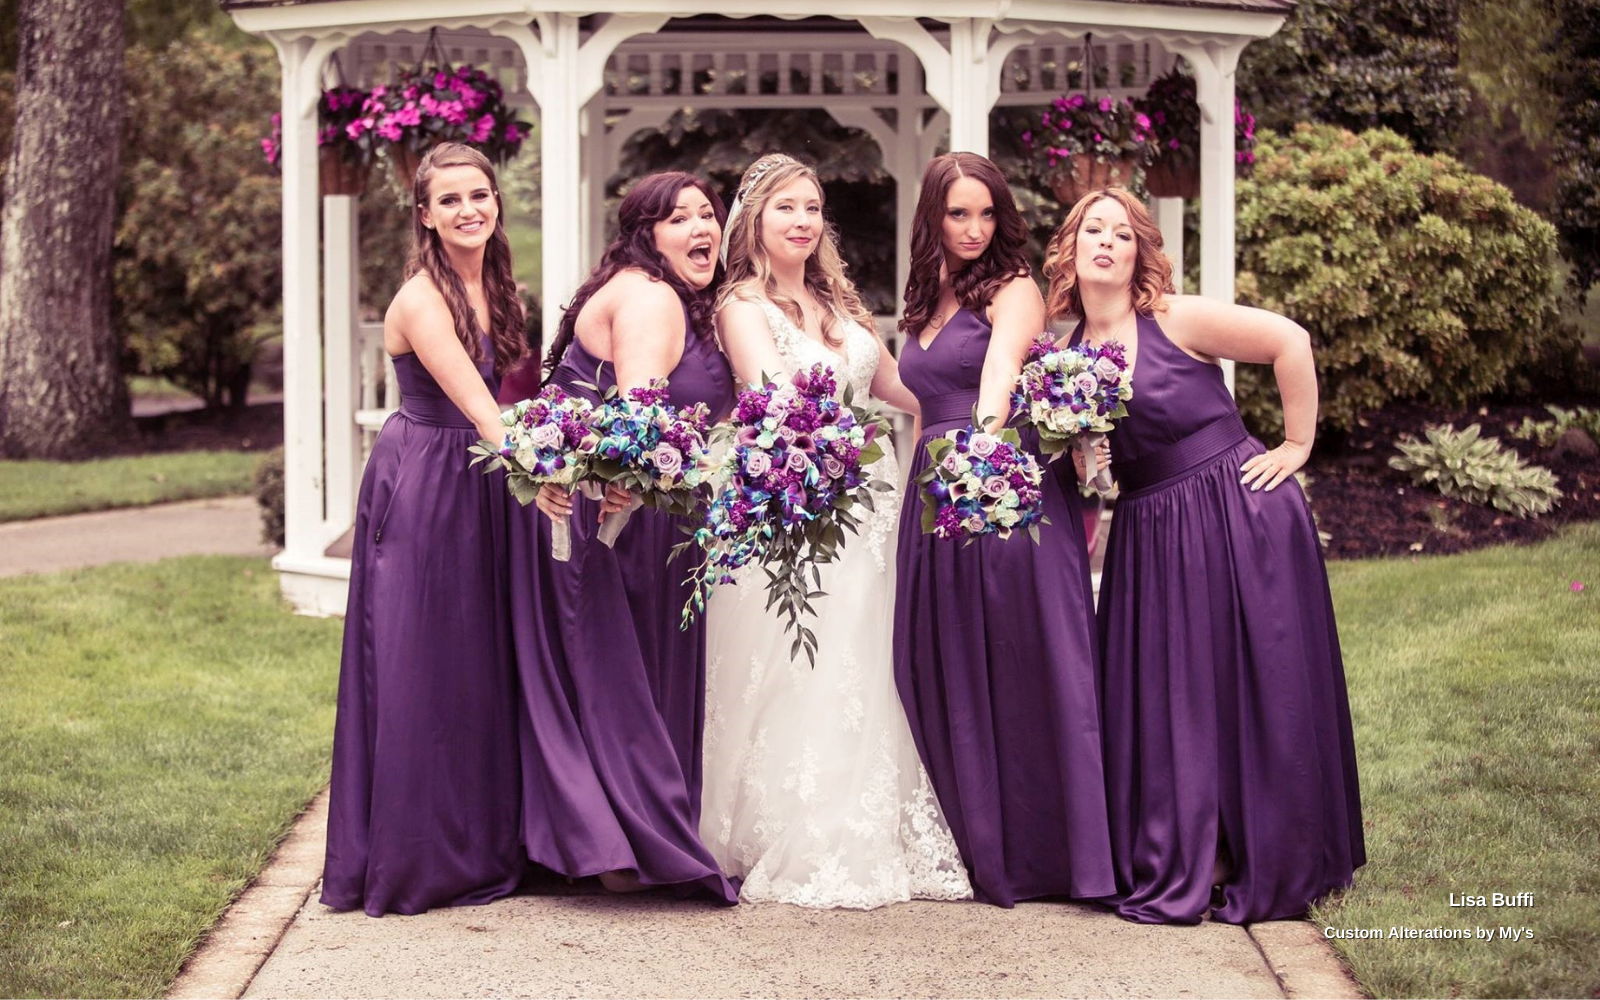 Lisa Buffi's Bridal Party